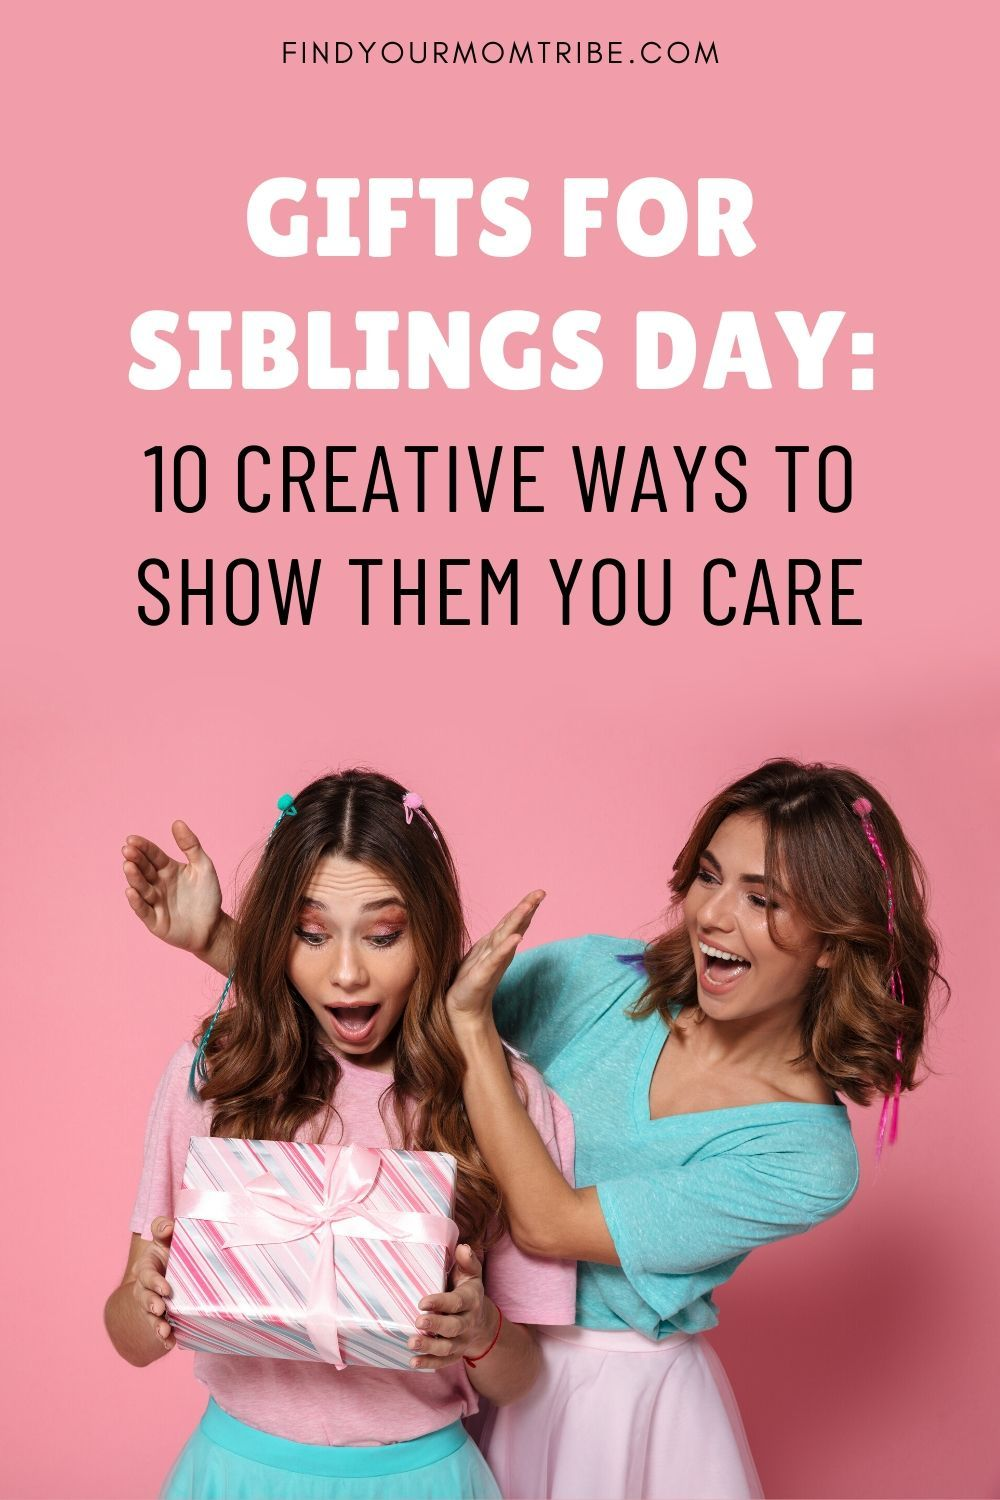 Best gifts for siblings day 10 creative ways to show them